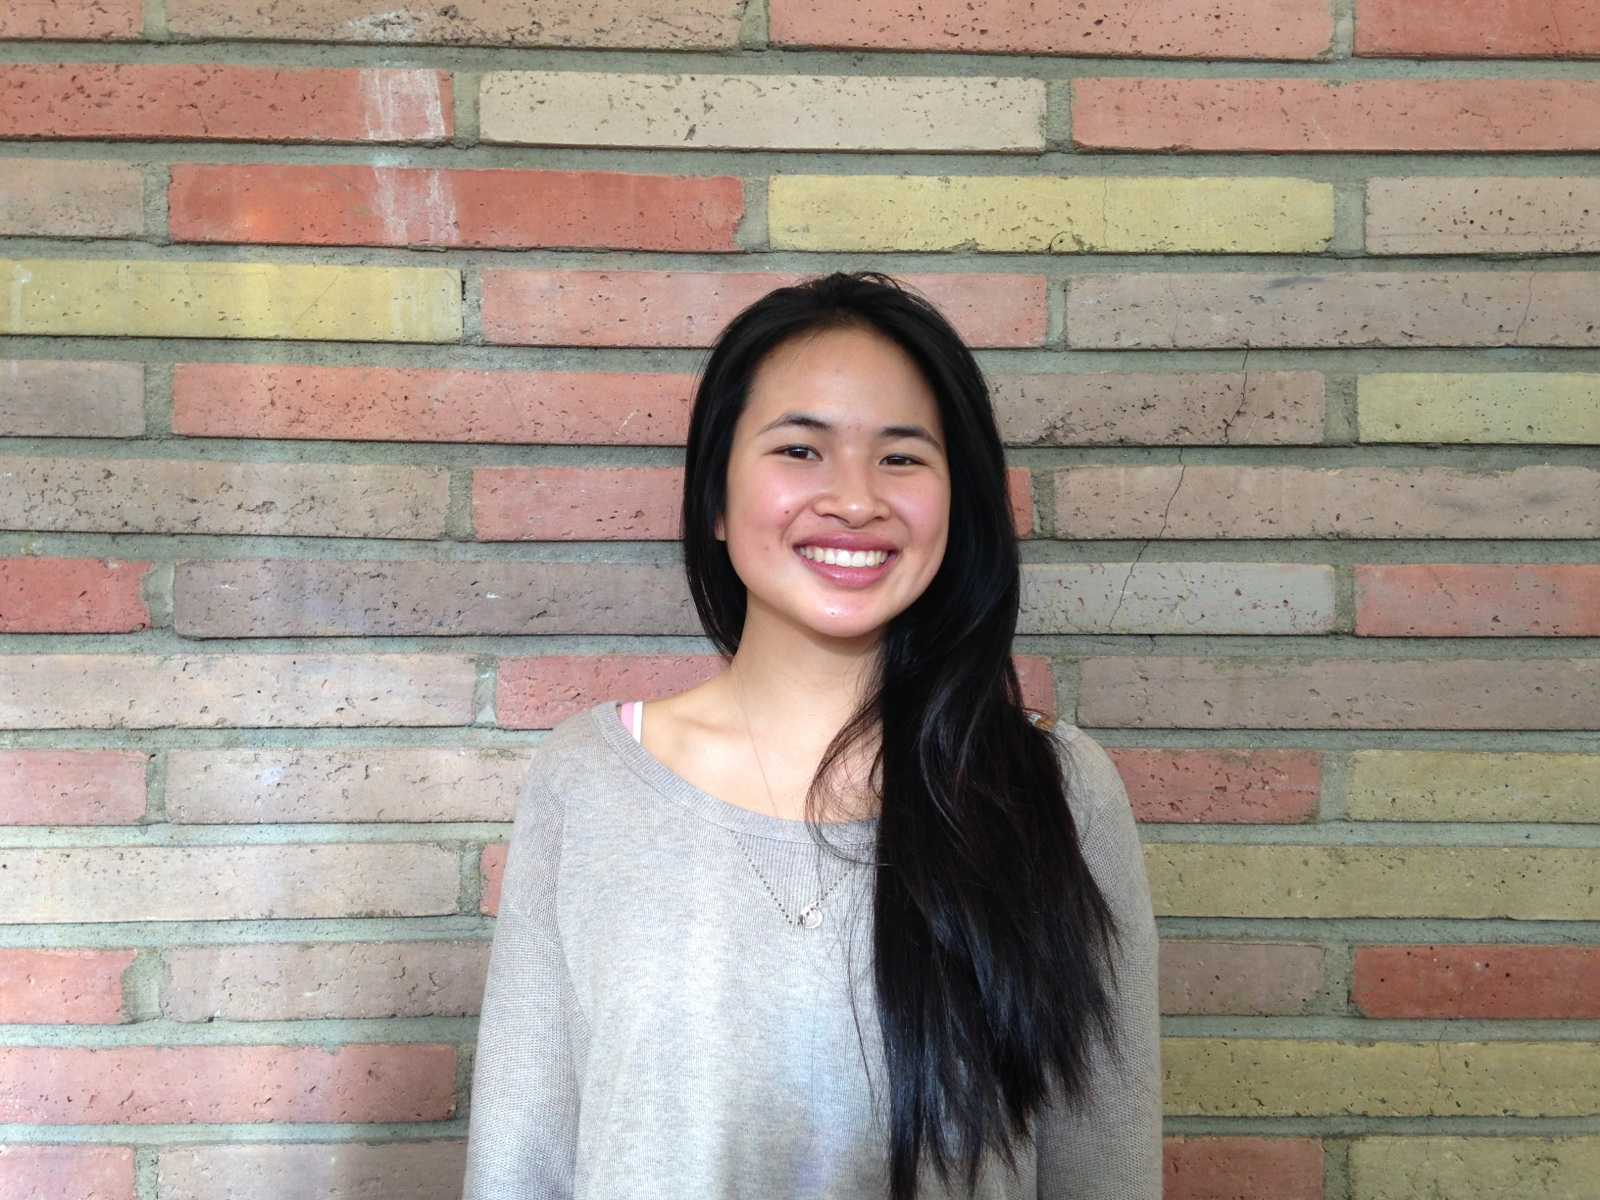 Kamrin Choye participates in many different volunteering opportunities.